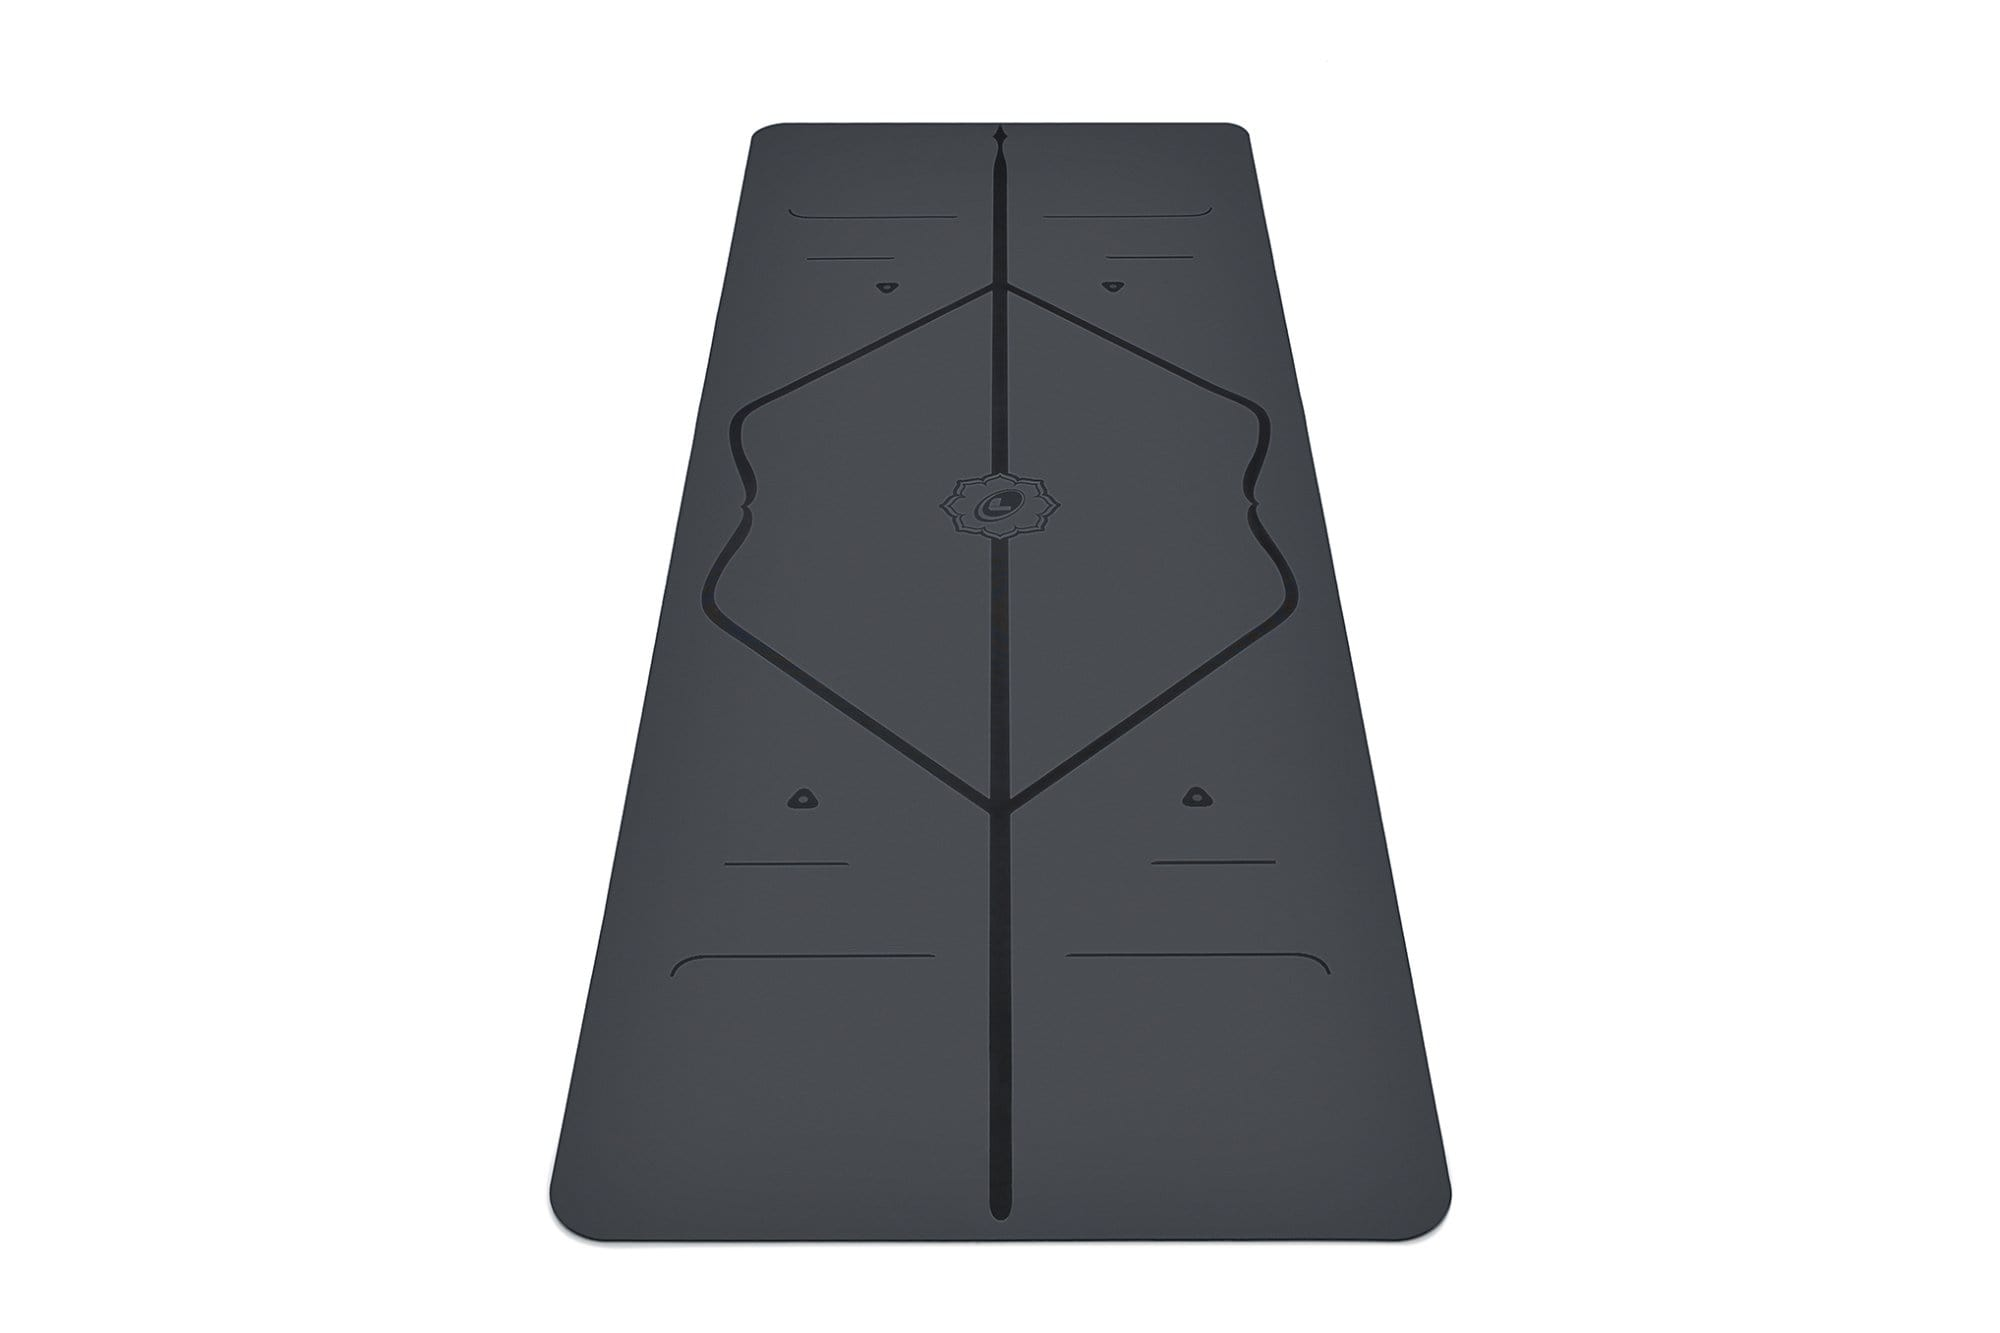 Portrait view of grey Yoga mat from Liforme